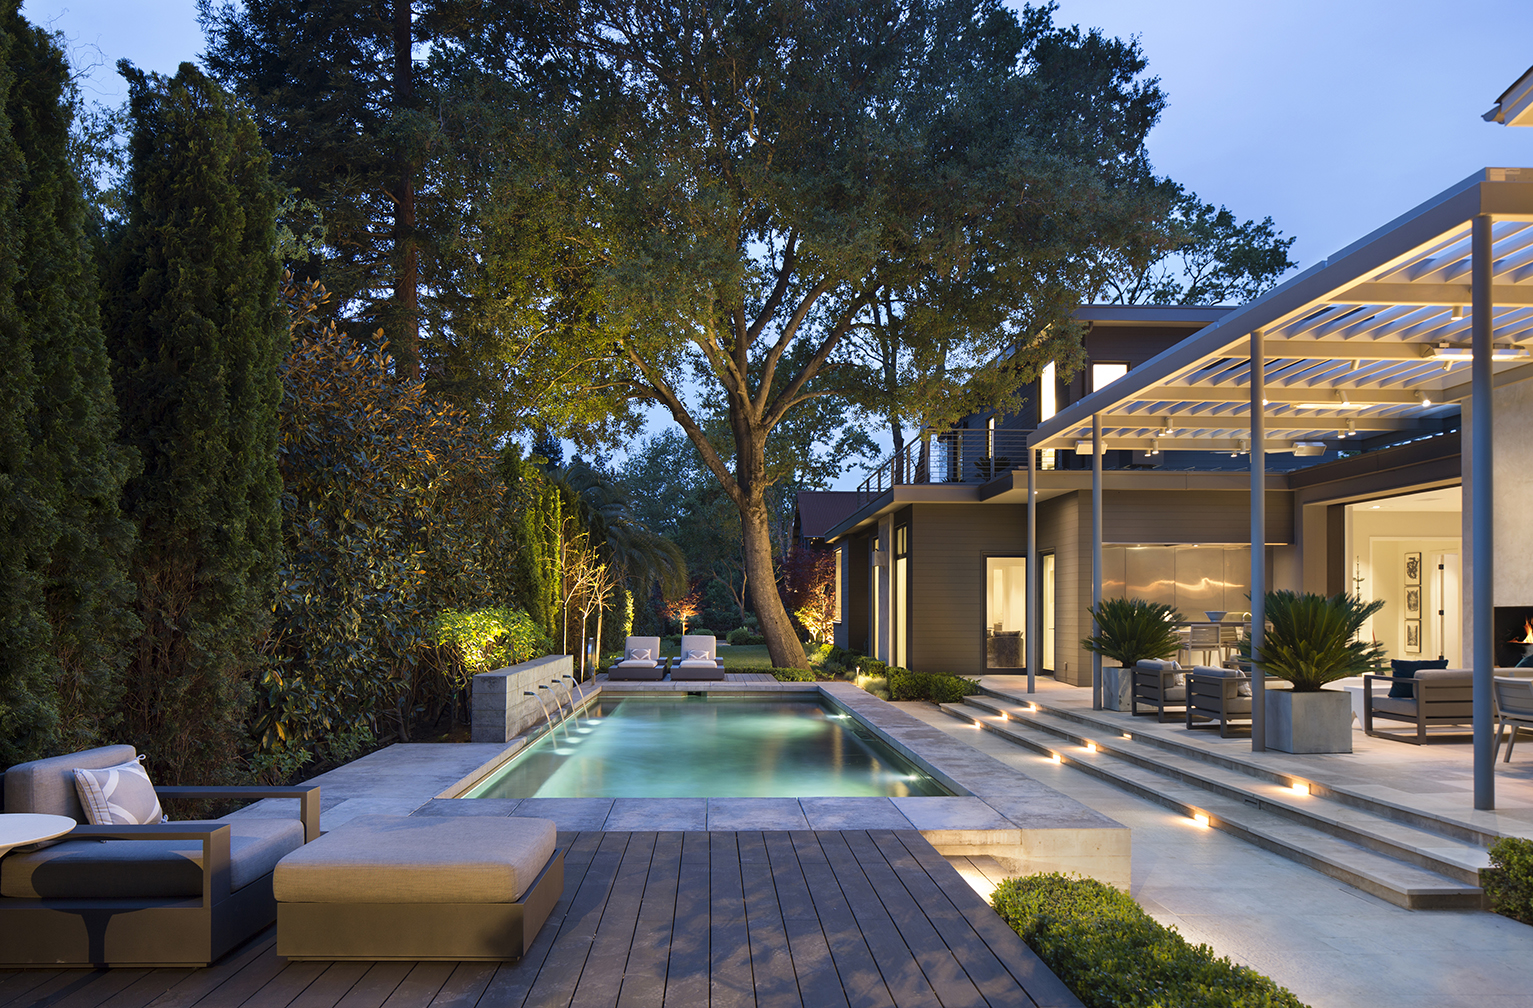 Jennifer_robins_interiors_projects_downtown_sonoma_exterior_landscape_8a